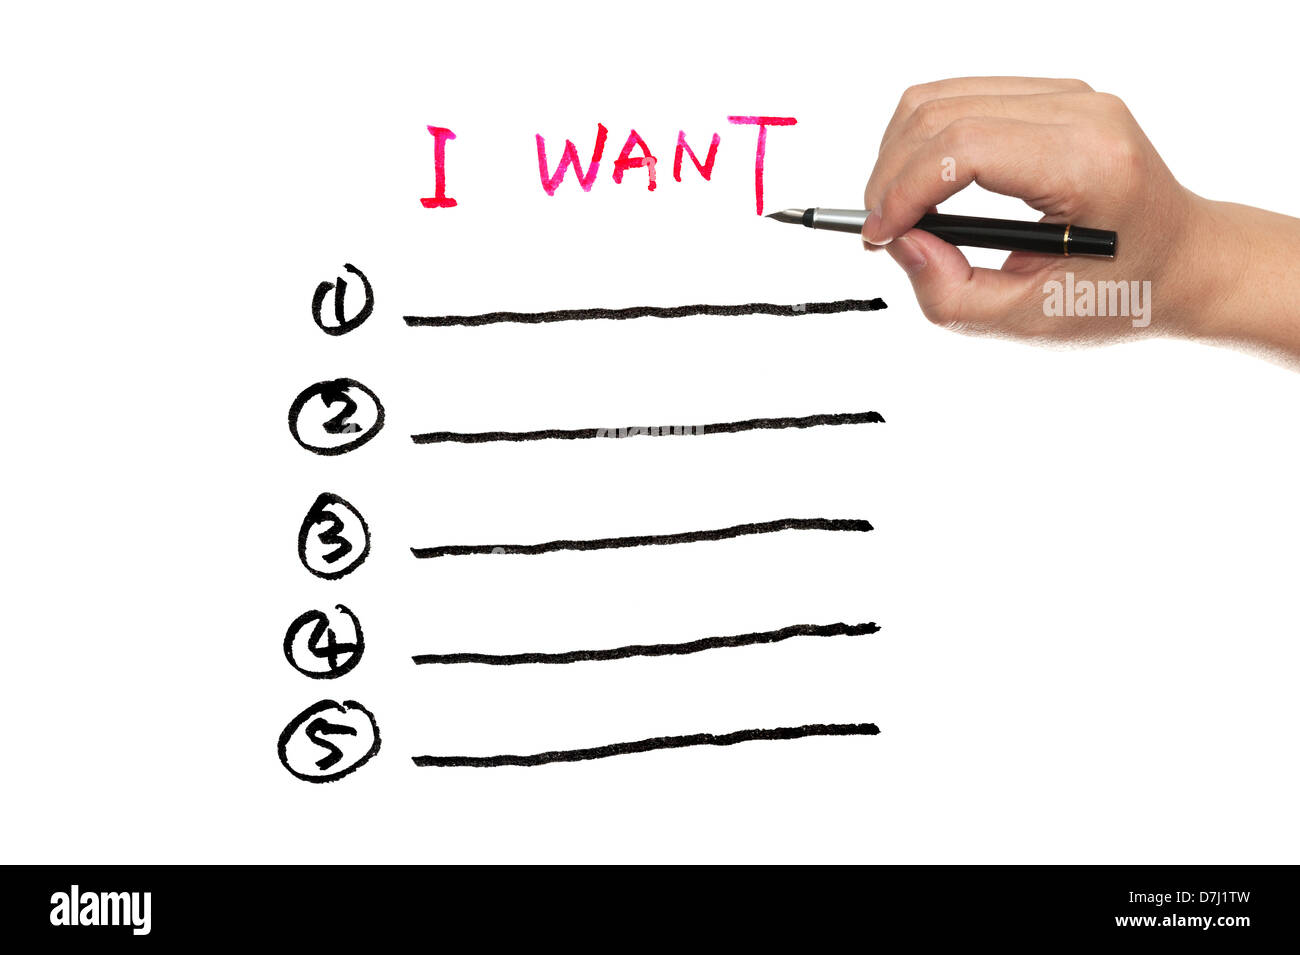 I want, wish list written on white paper - Stock Image